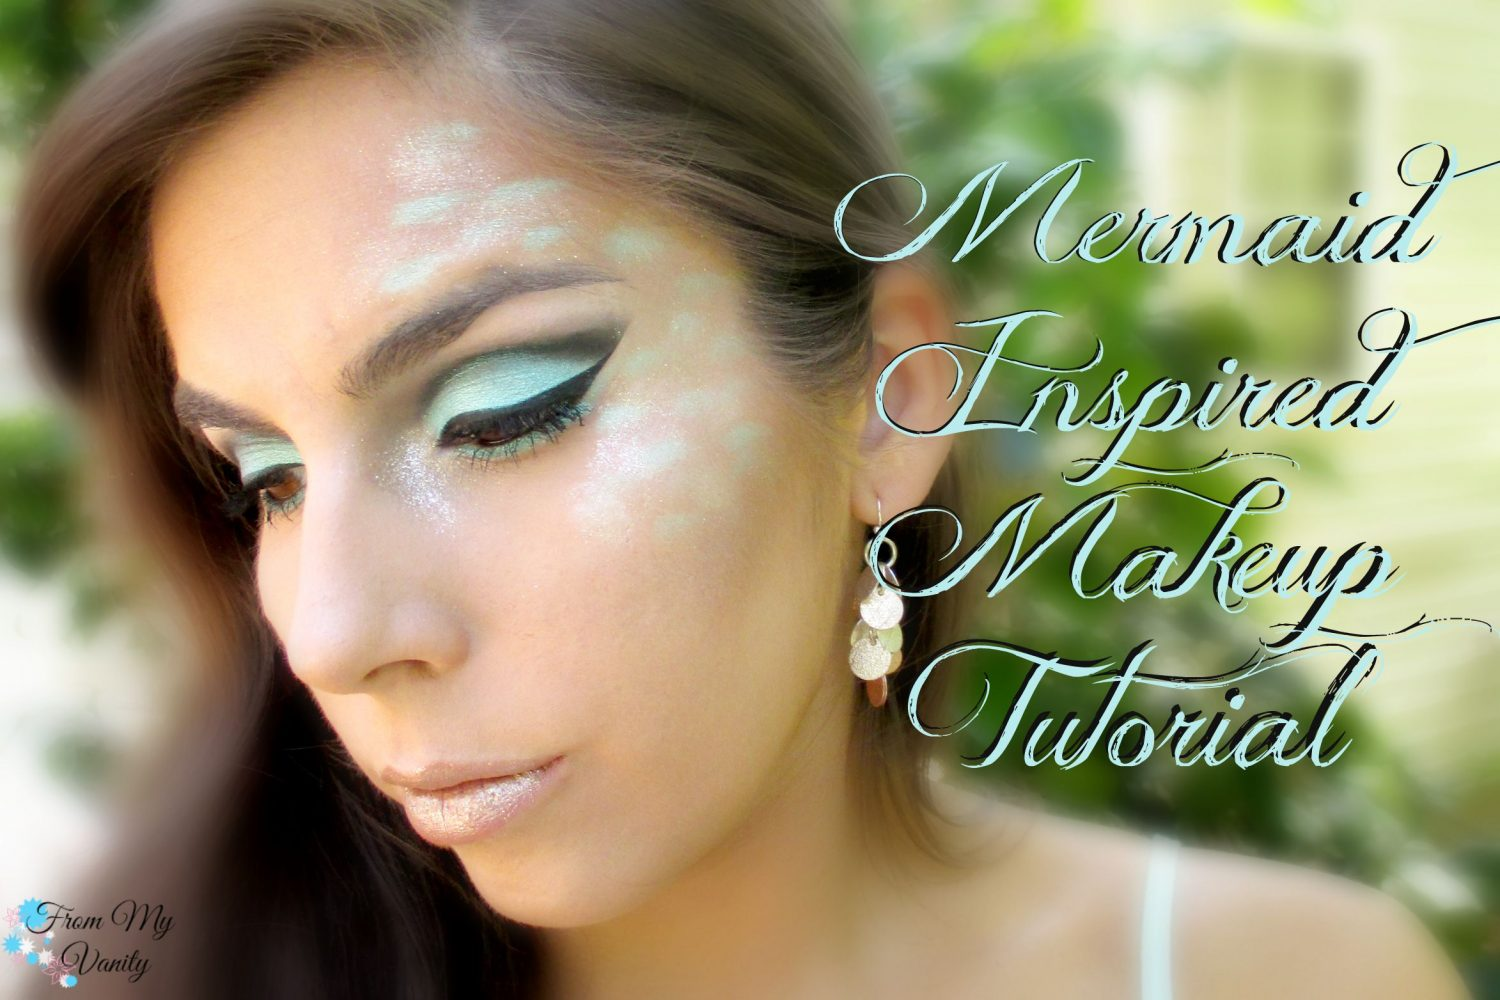 Mermaid-Inspired Makeup Tutorial // www.FromMyVanity.com #ladykaty92